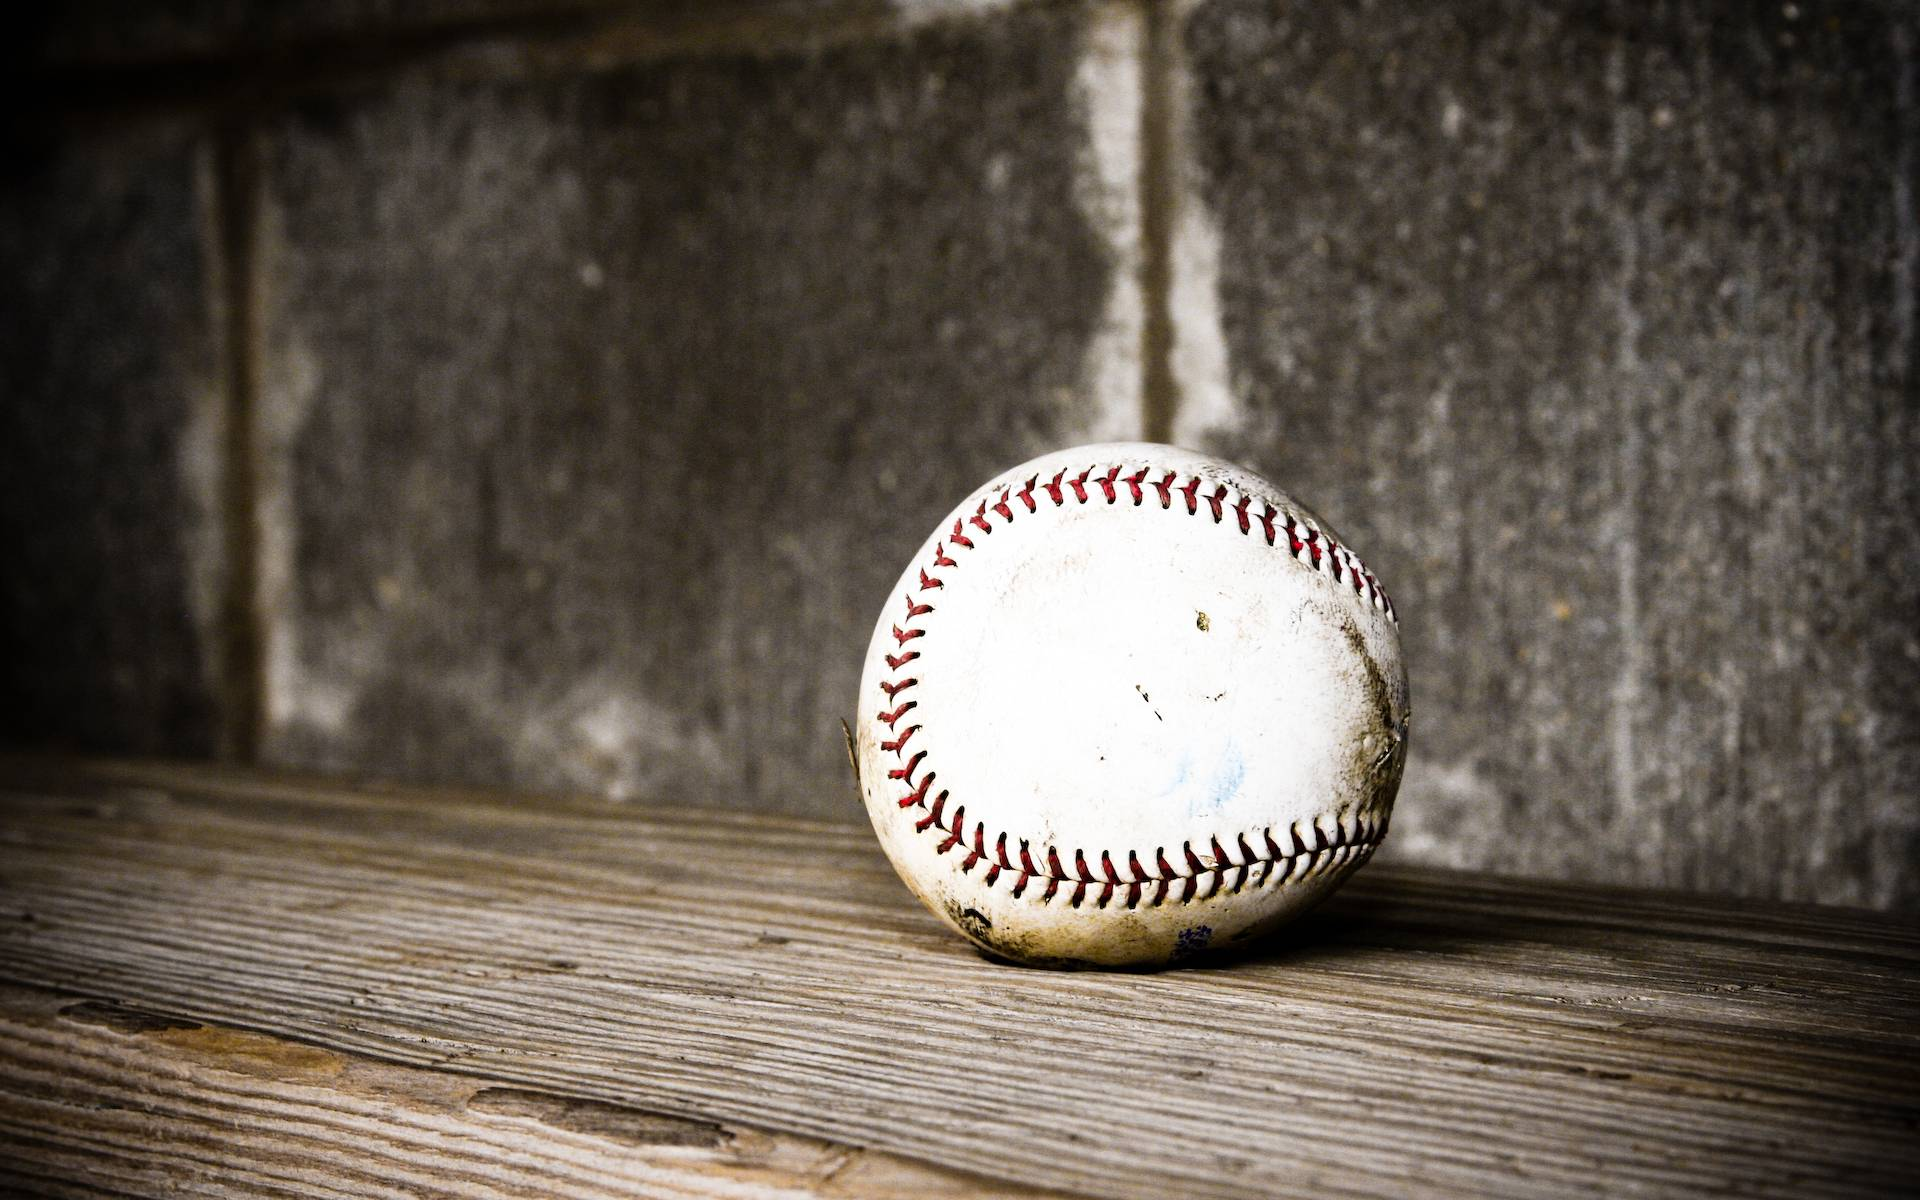 Baseball Wallpaper Collection For Free Download | HD Wallpapers ...